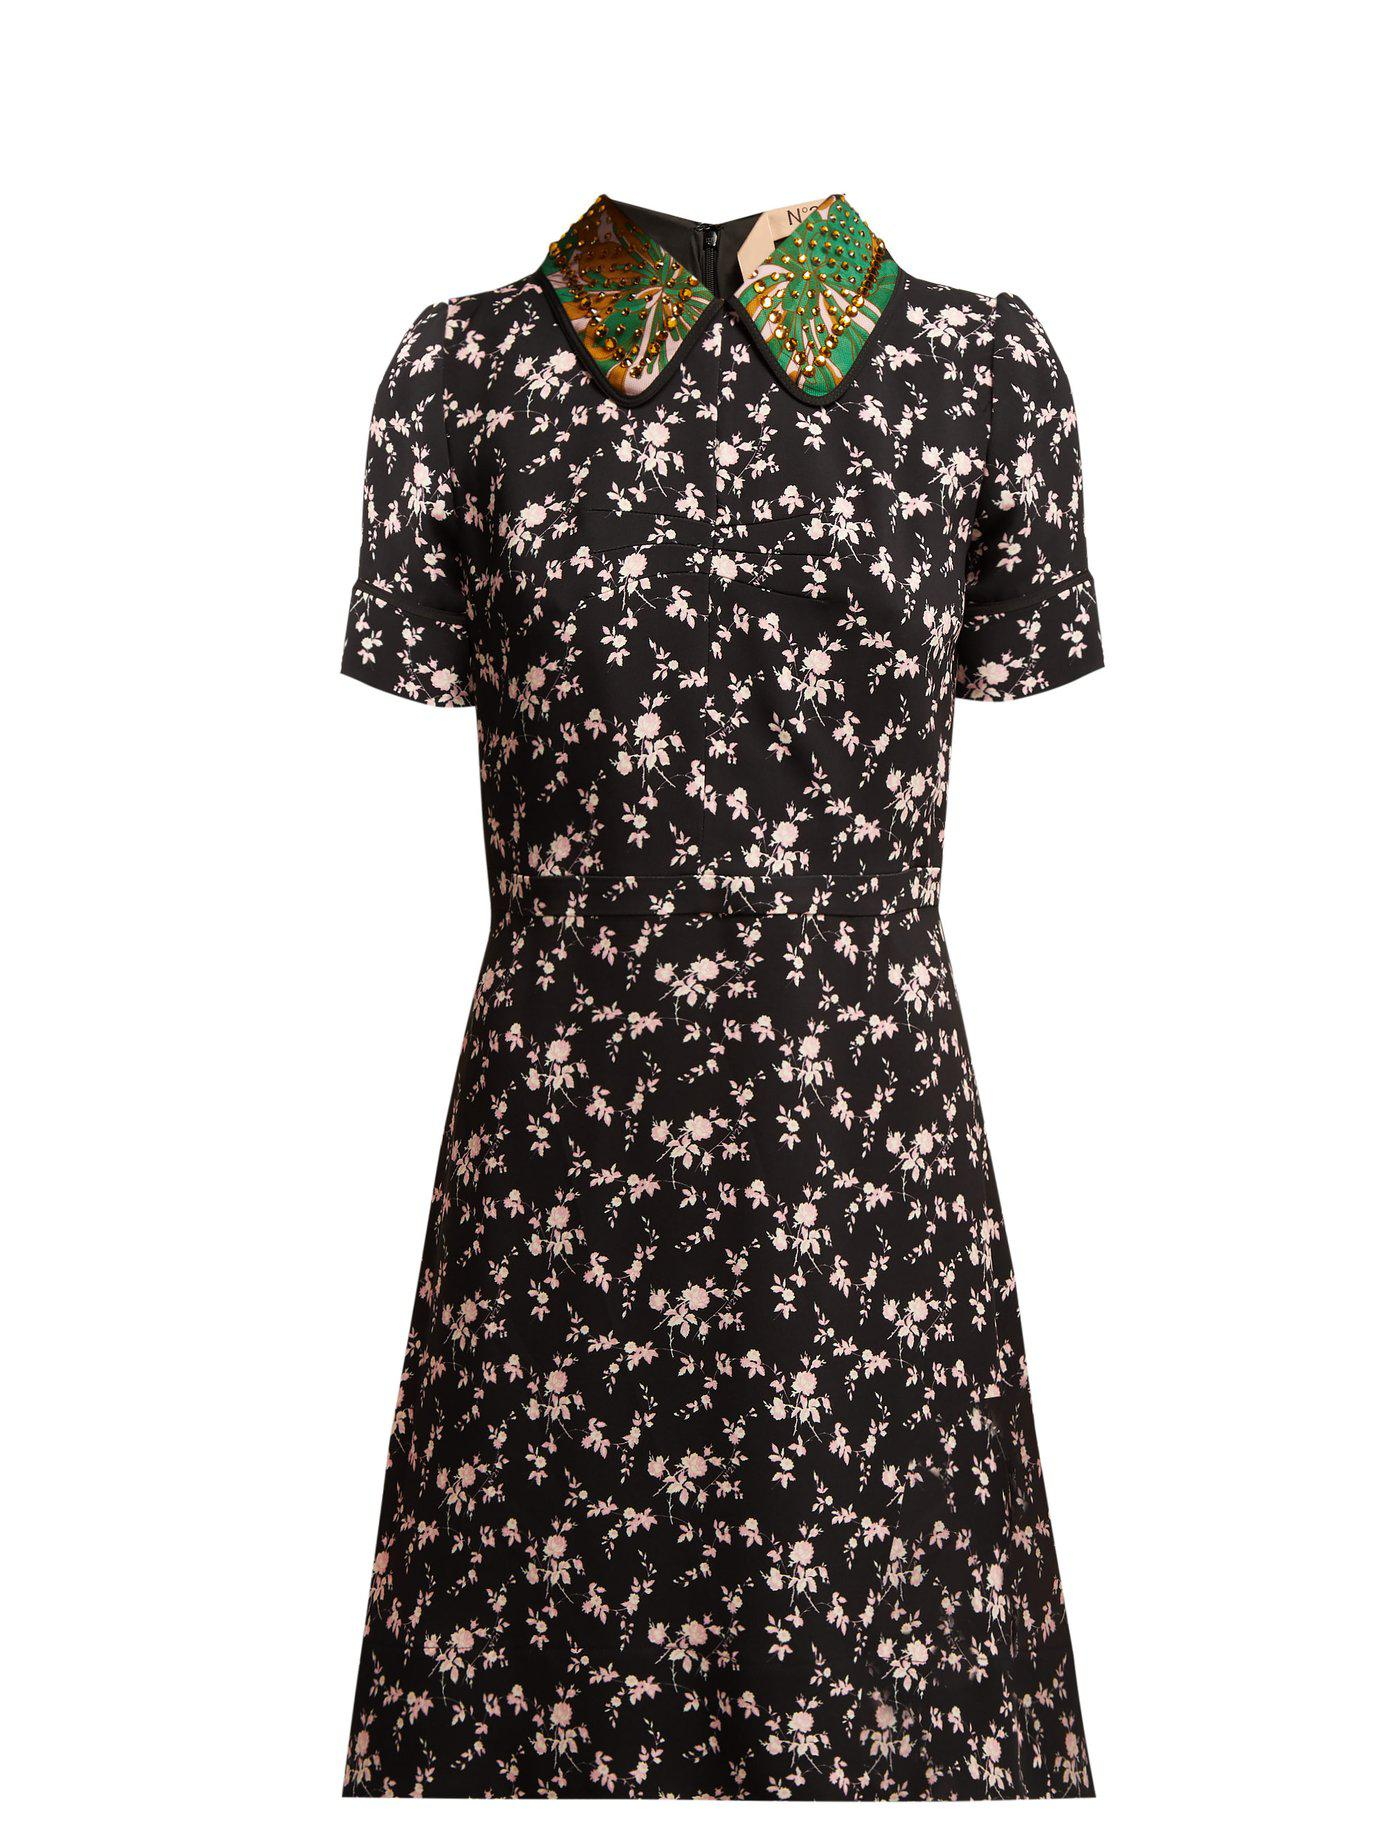 6bd440097 n21-black-multi-Stampa-Floral-Print-Dress.jpeg